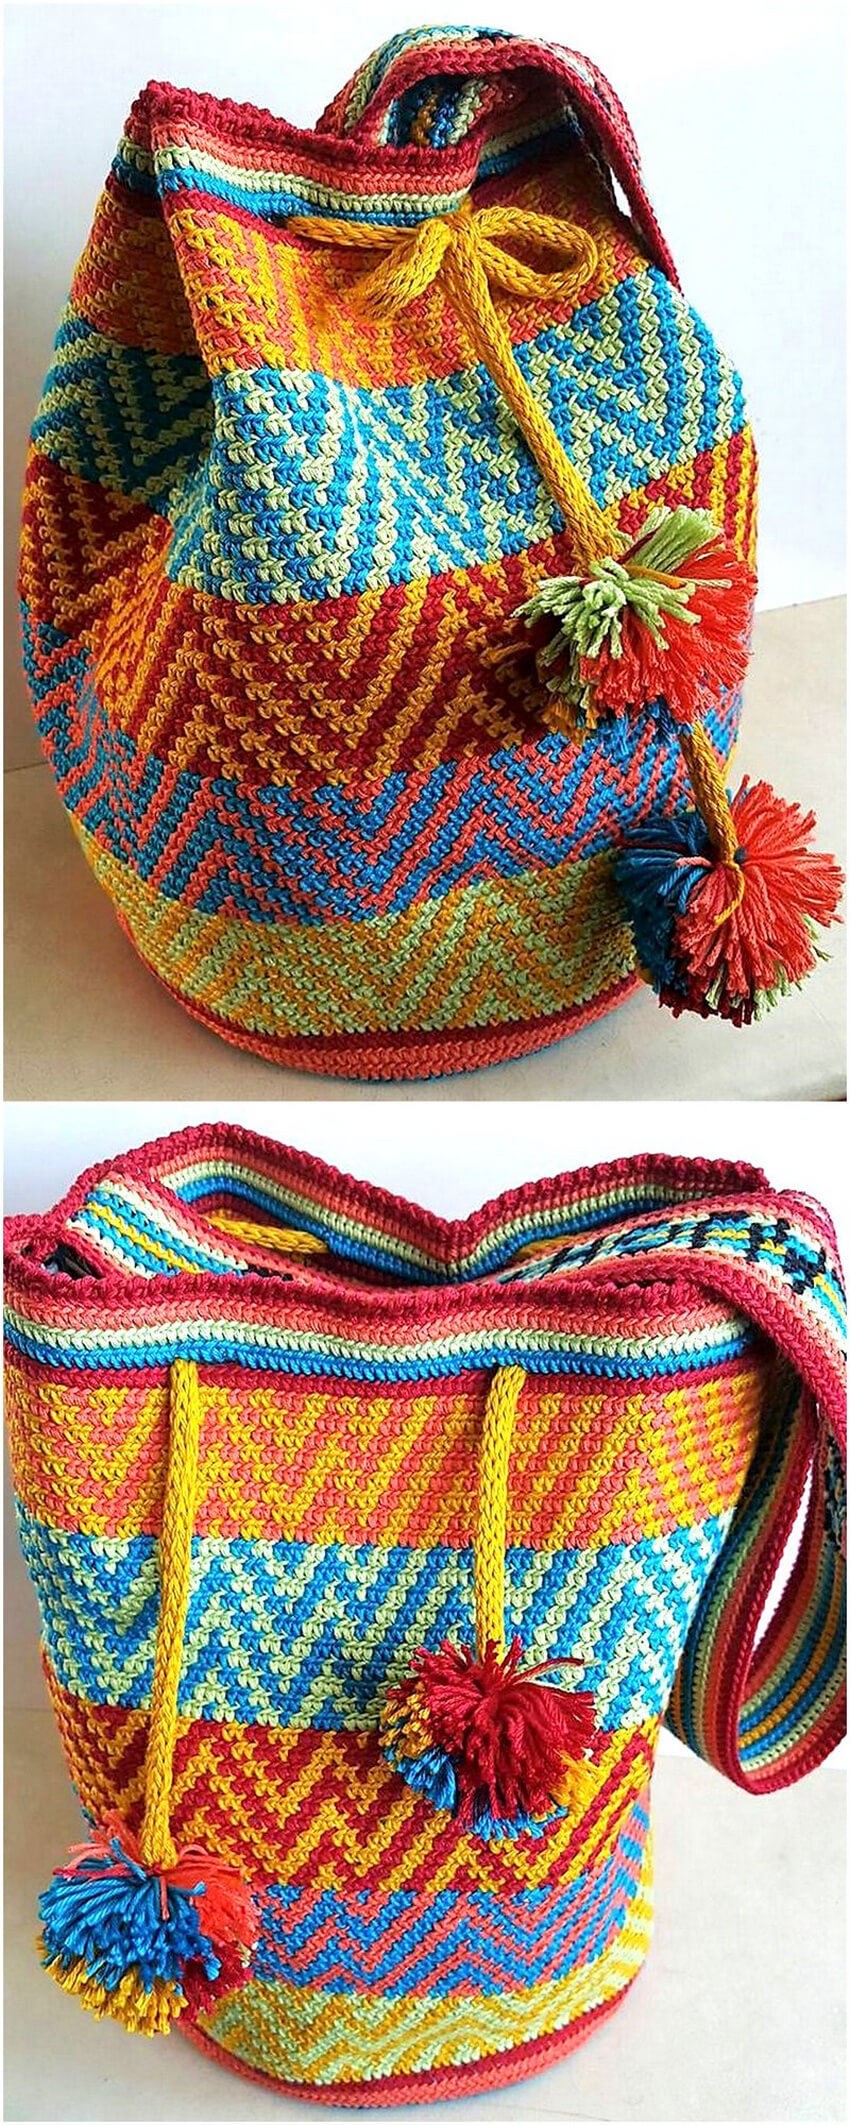 crocheted bag design ideas 5